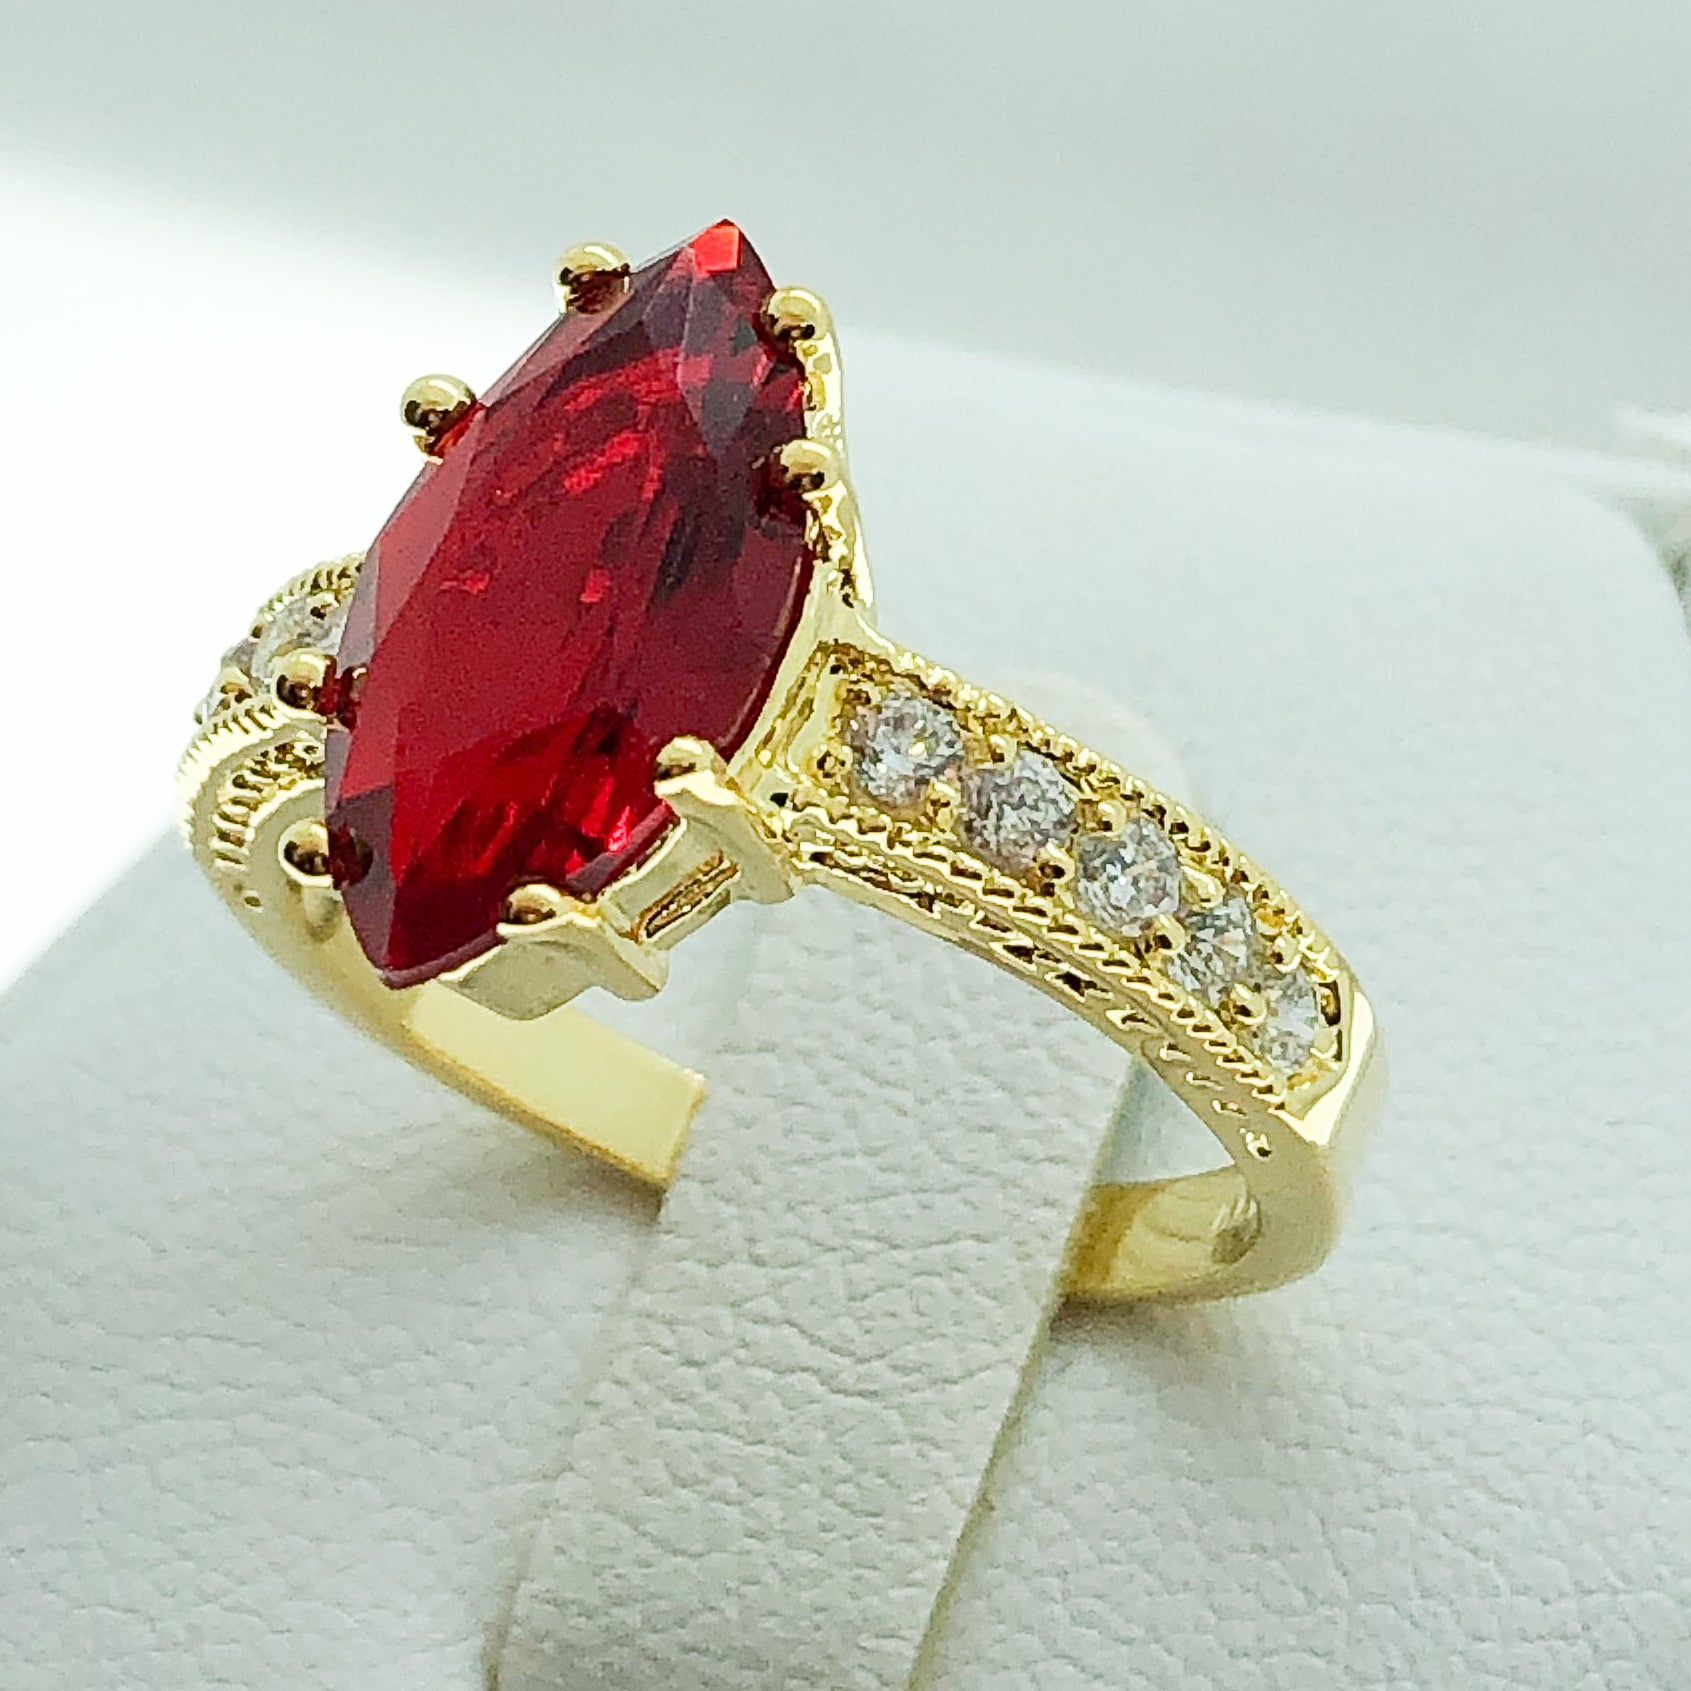 ID:R0344 Women Vintage Jewelry 18K Yellow Gold GF Solitaire Ruby Cocktail Ring With Clear Crystal Accent Birthday Gift